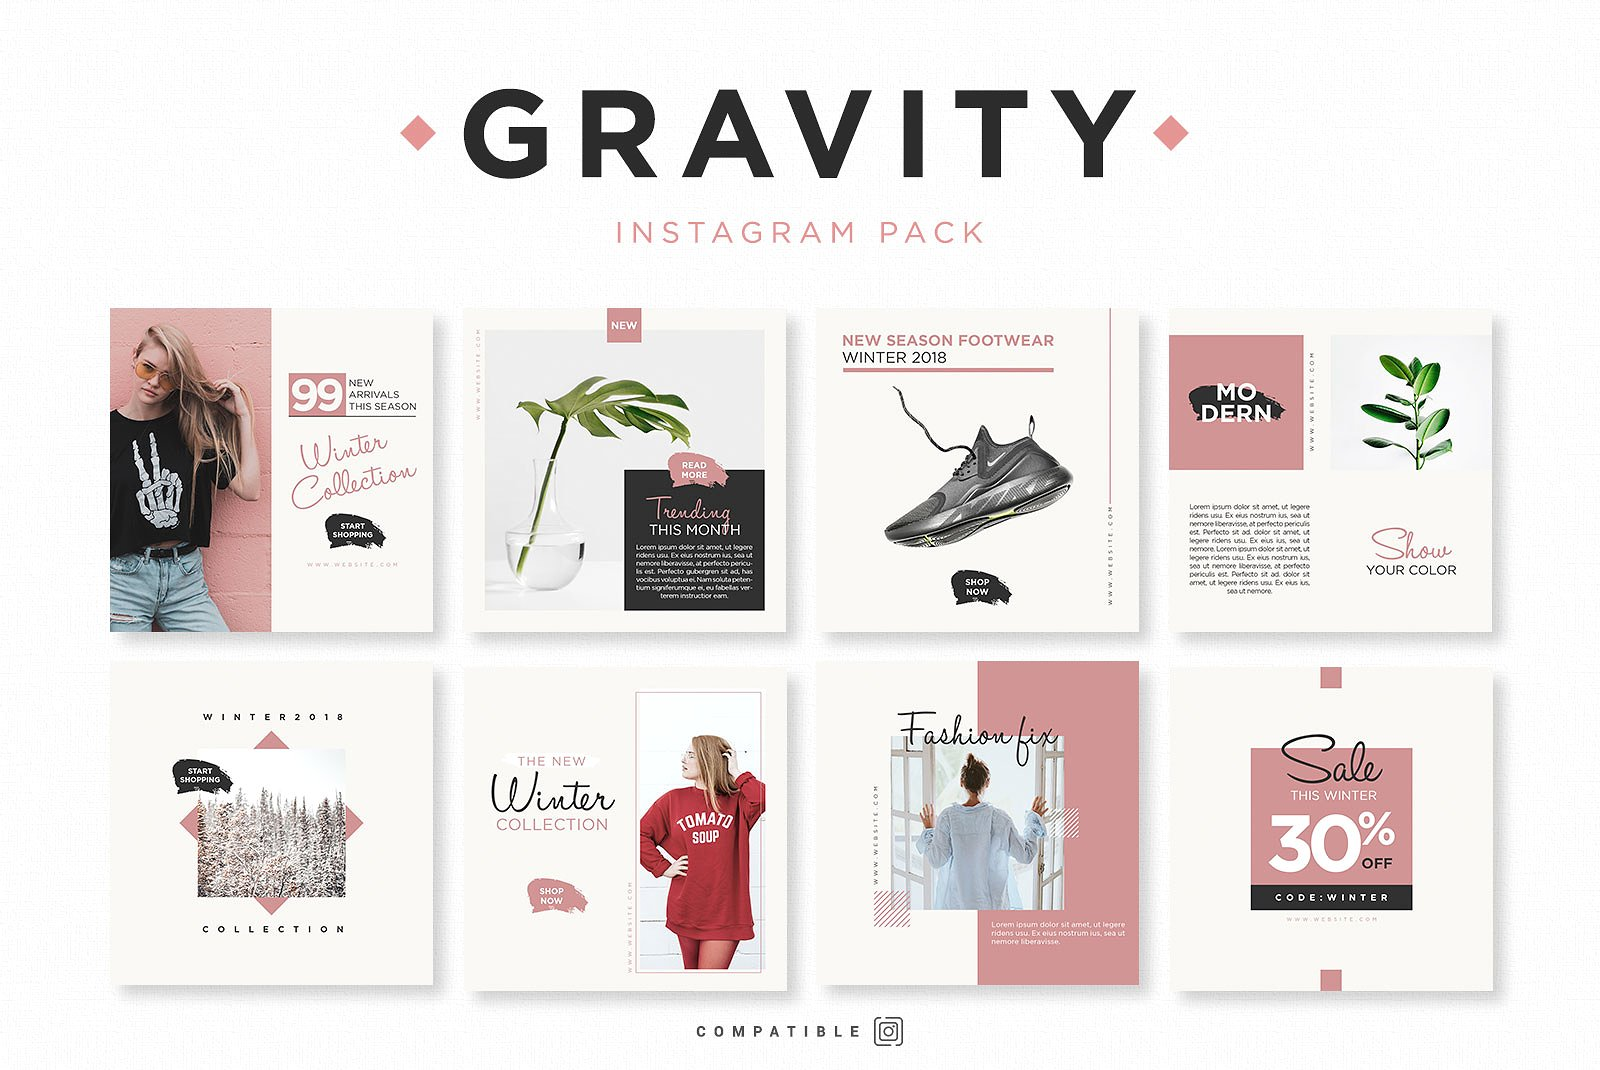 Gravity Instagram Pack Graphic By wally6484 Image 1